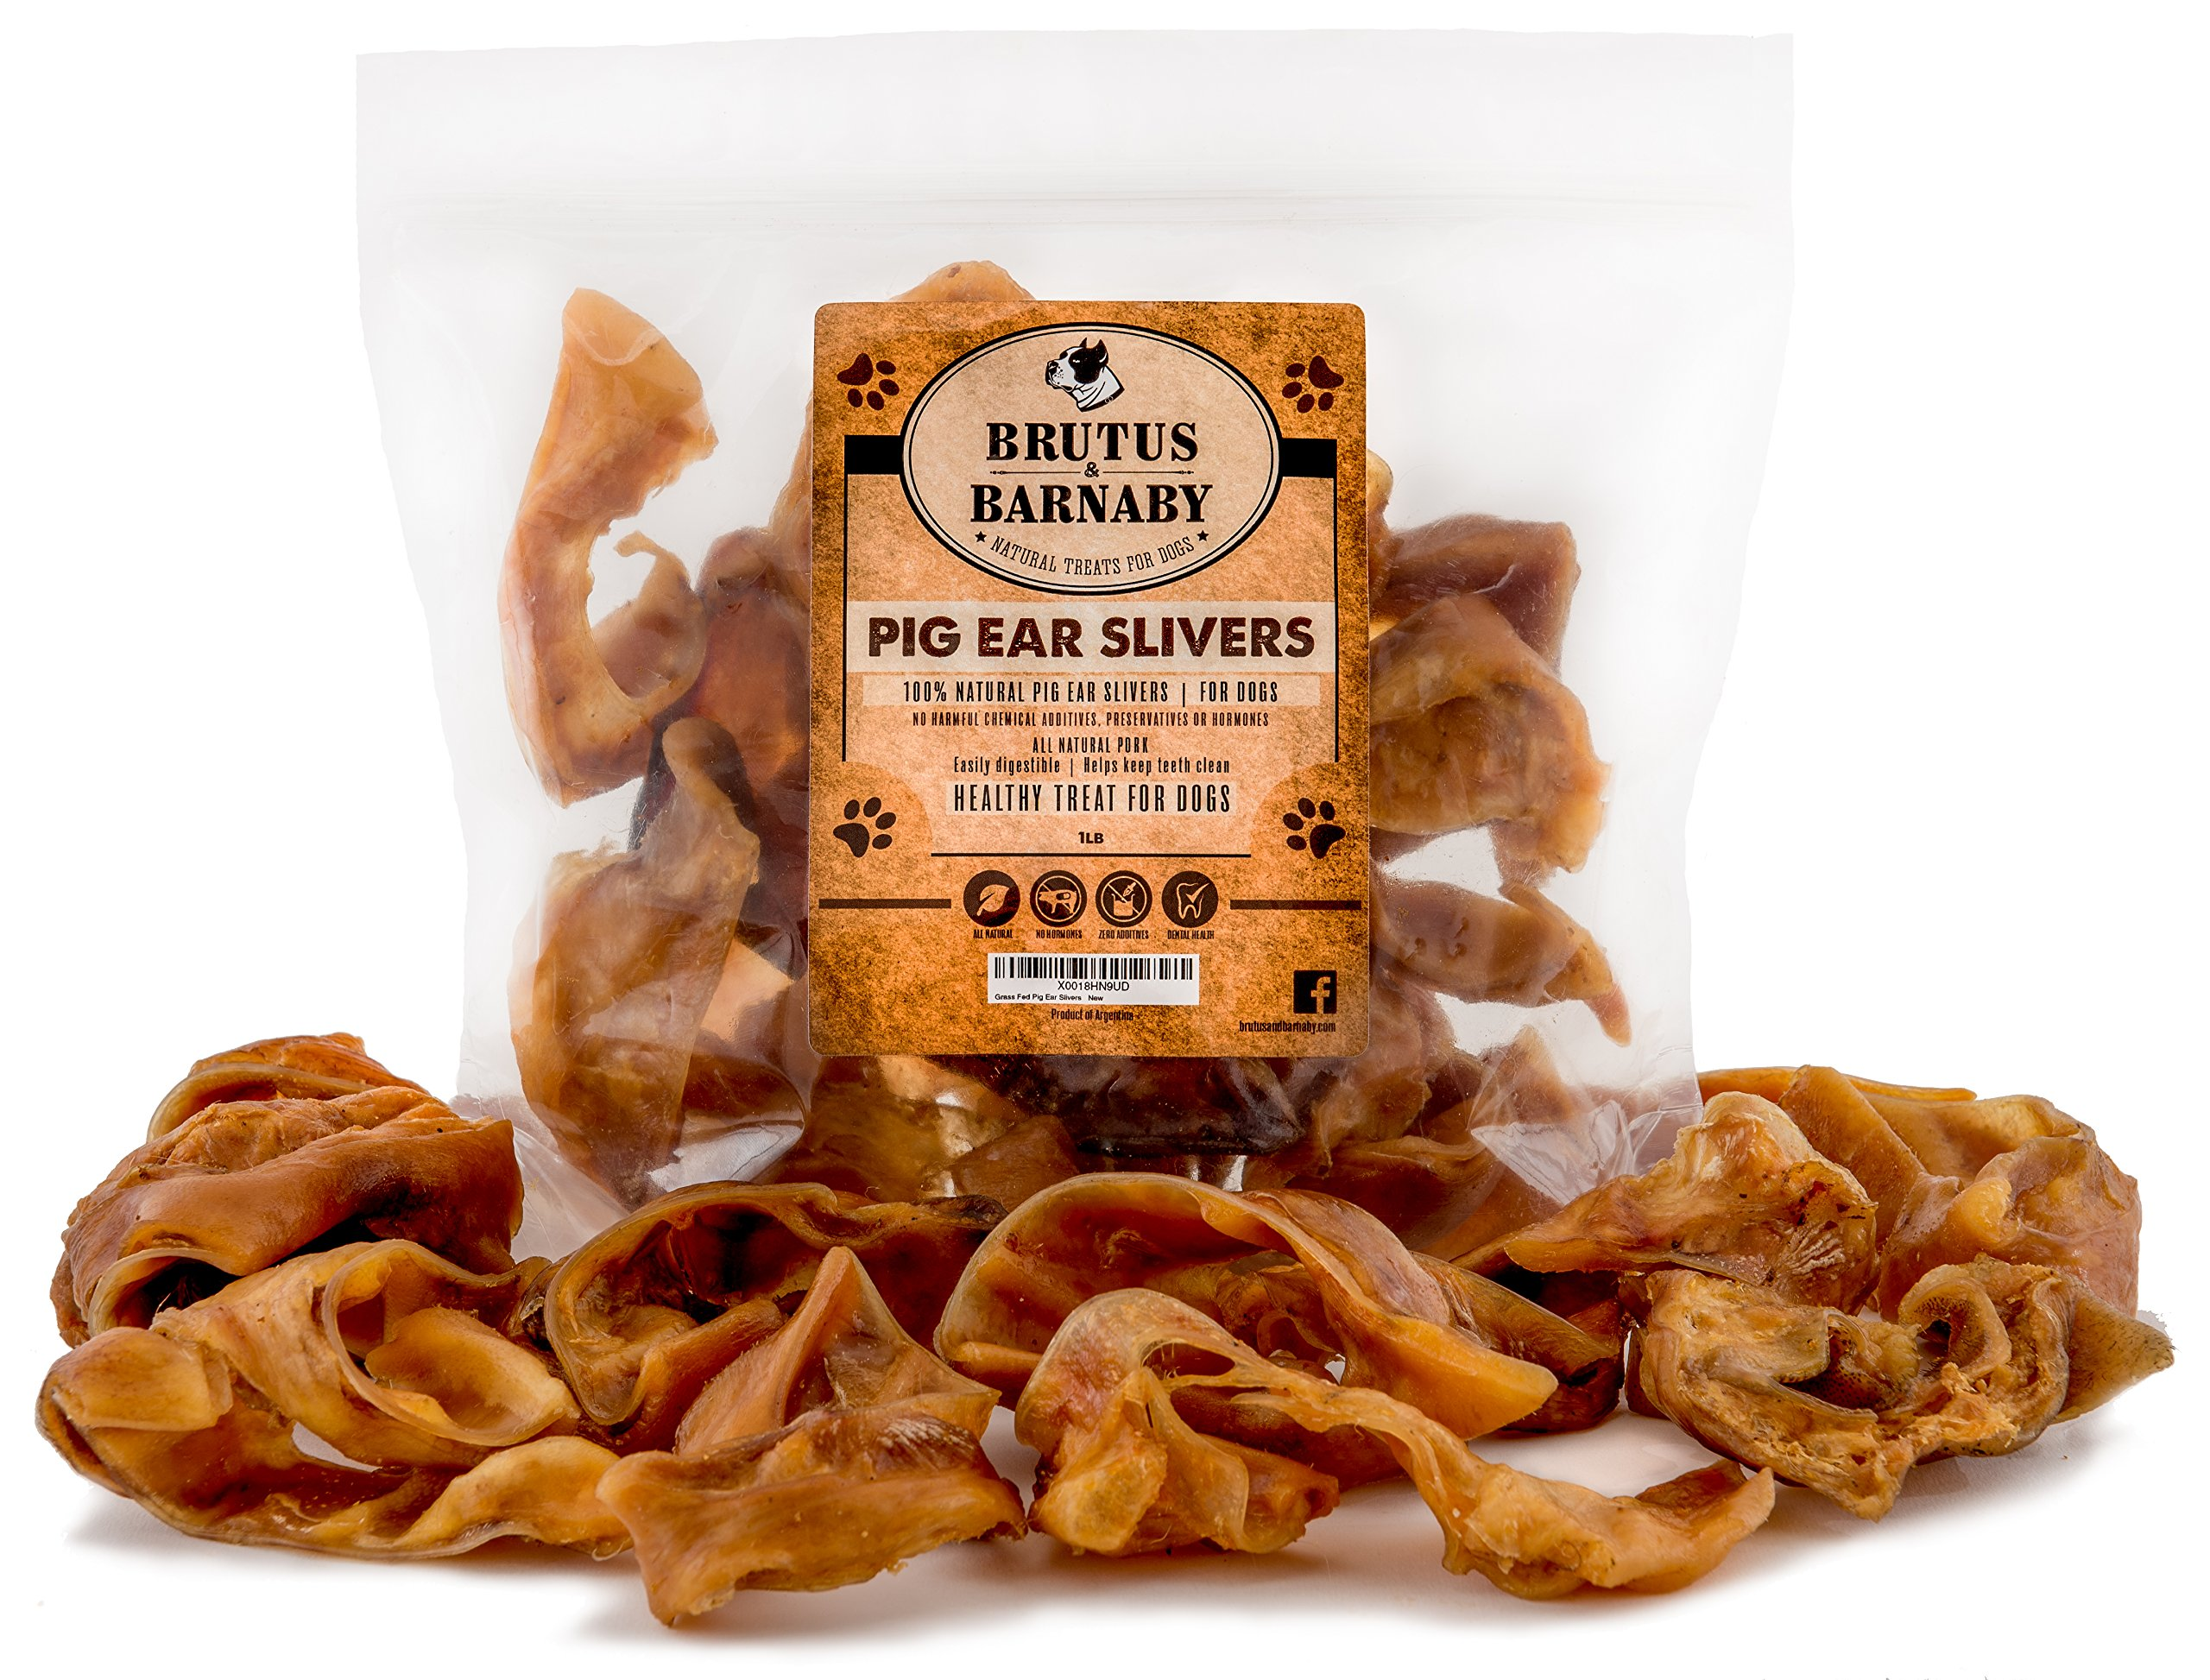 Pig Ear Slivers- 1 lb THICK CUT, All Natural Dog Treat, Healthy Pure Pork Ear, Easily Digested, Best Gift for Large & Small Dogs from Brutus & Barnaby